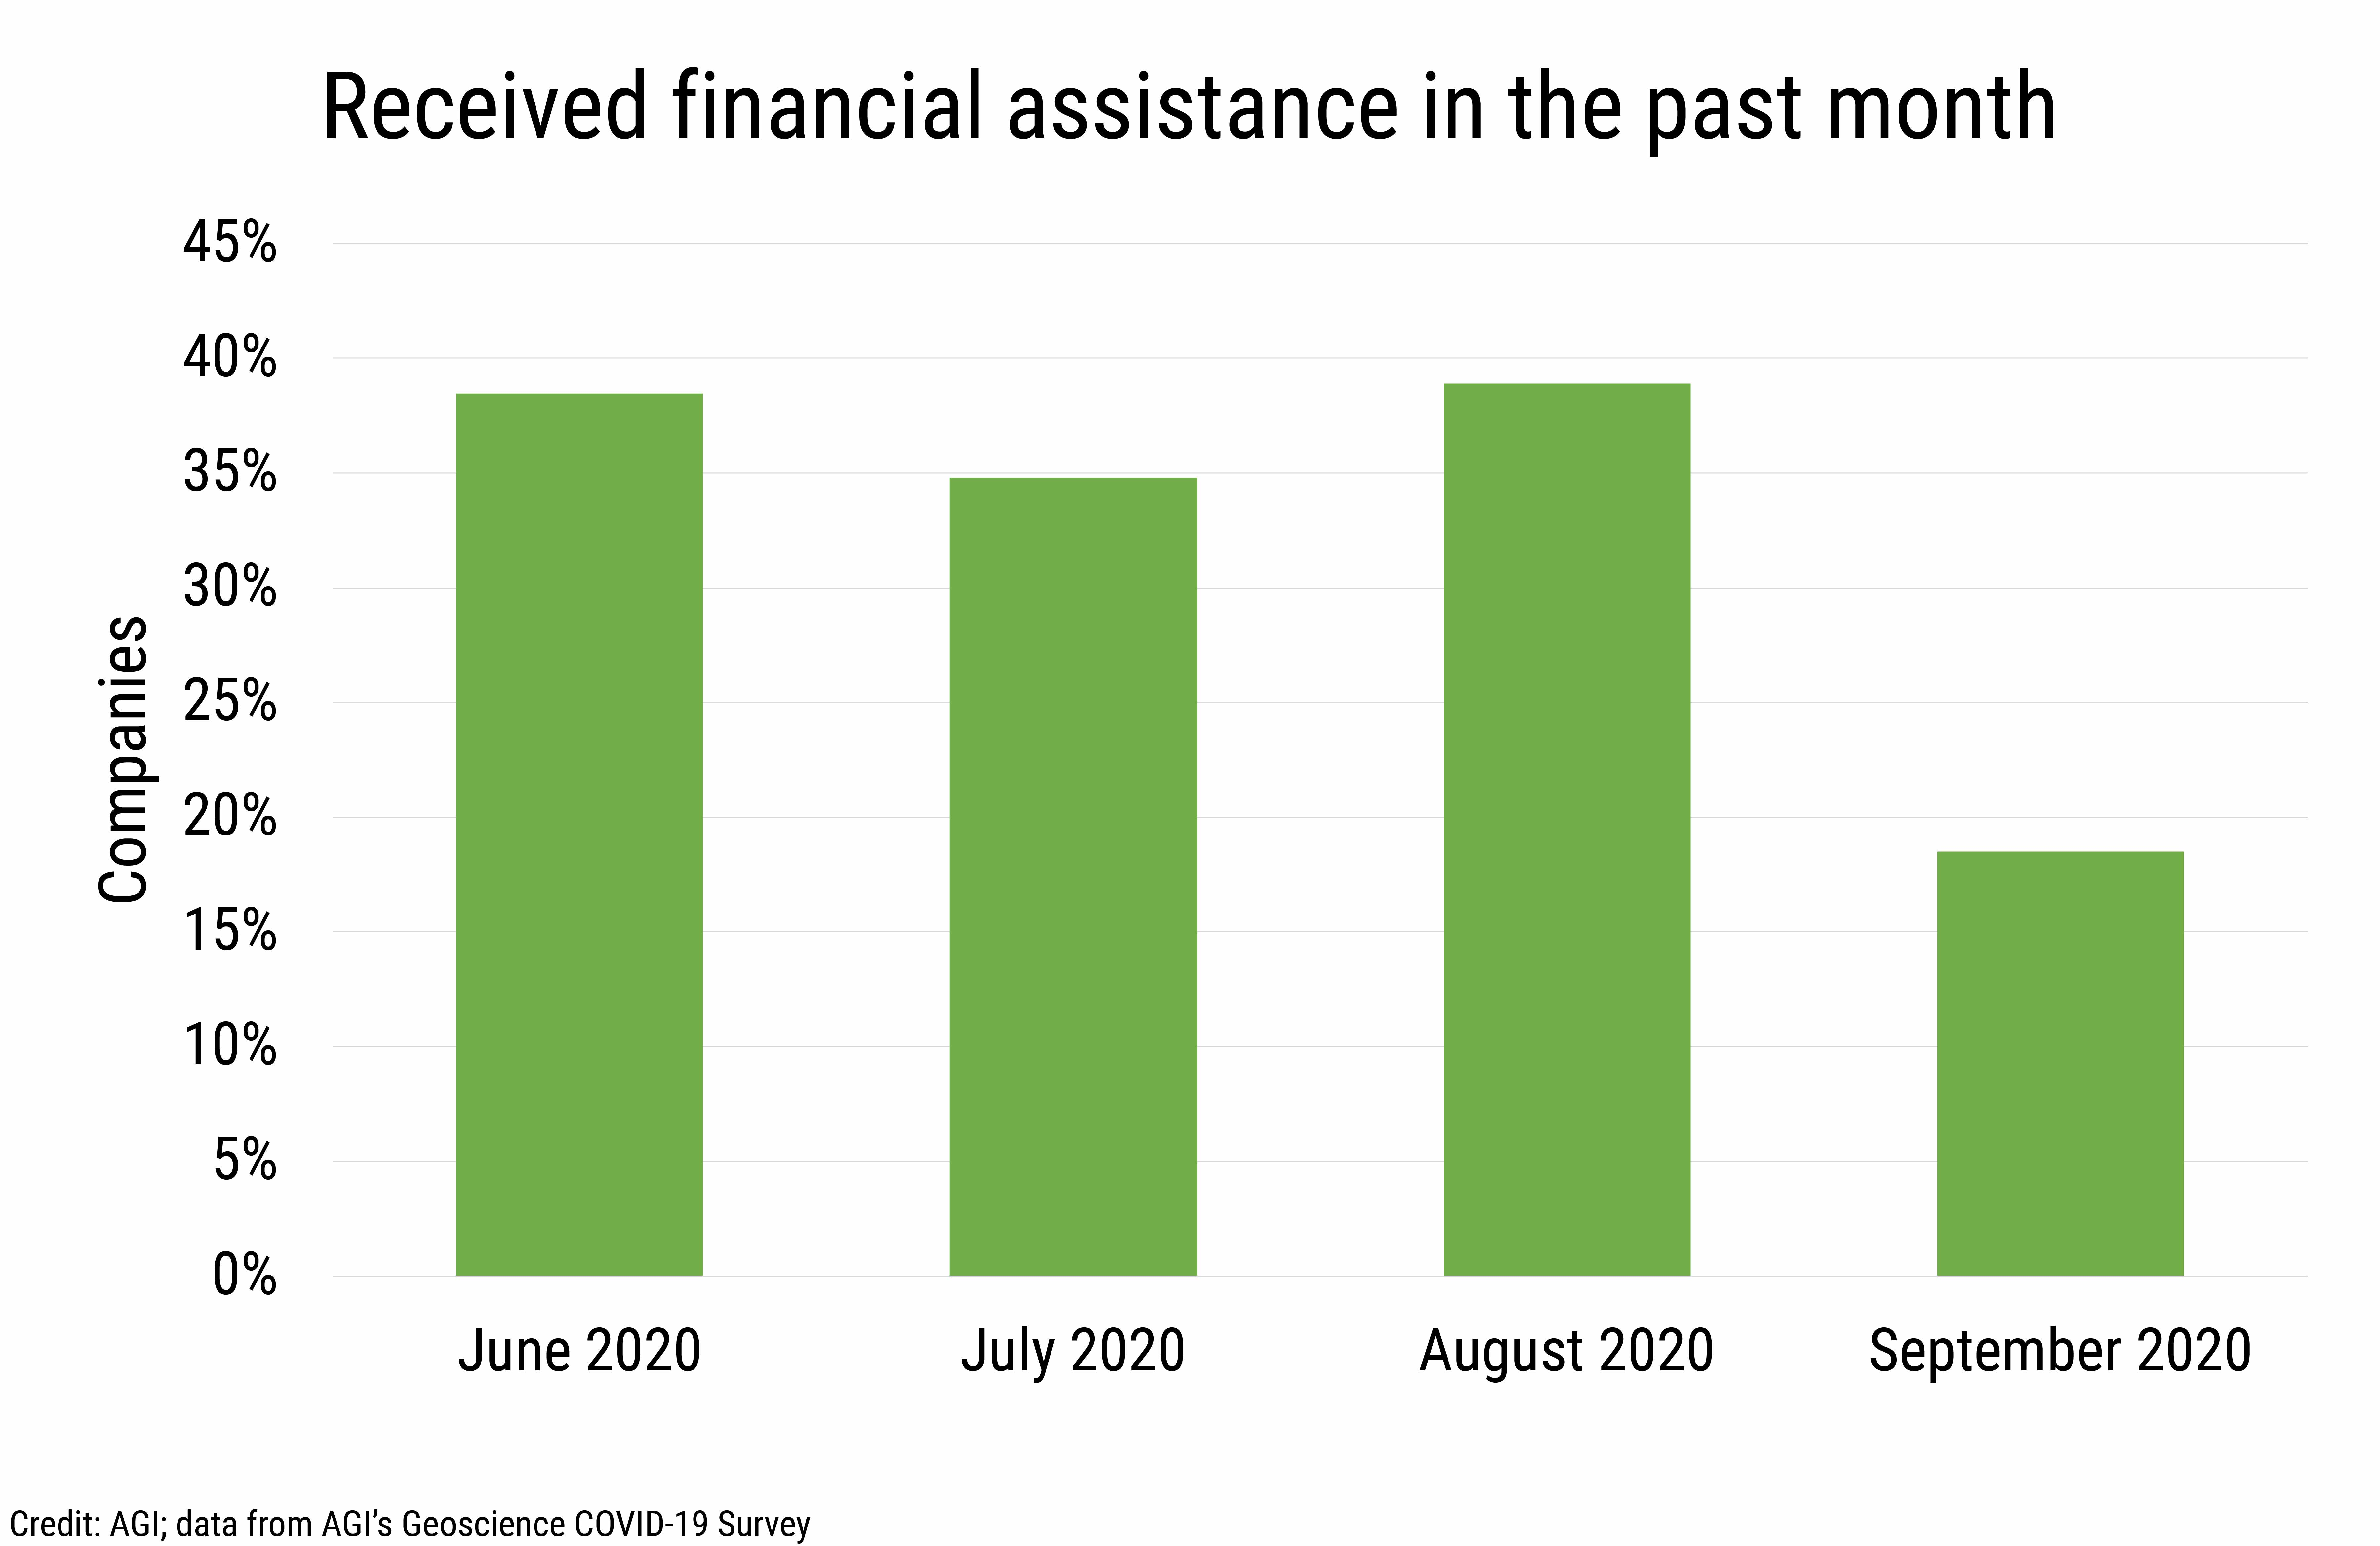 DB_2020-027 chart 03:  Received financial assistance in the past month (Credit: AGI; data from AGI's Geoscience COVID-19 Survey)